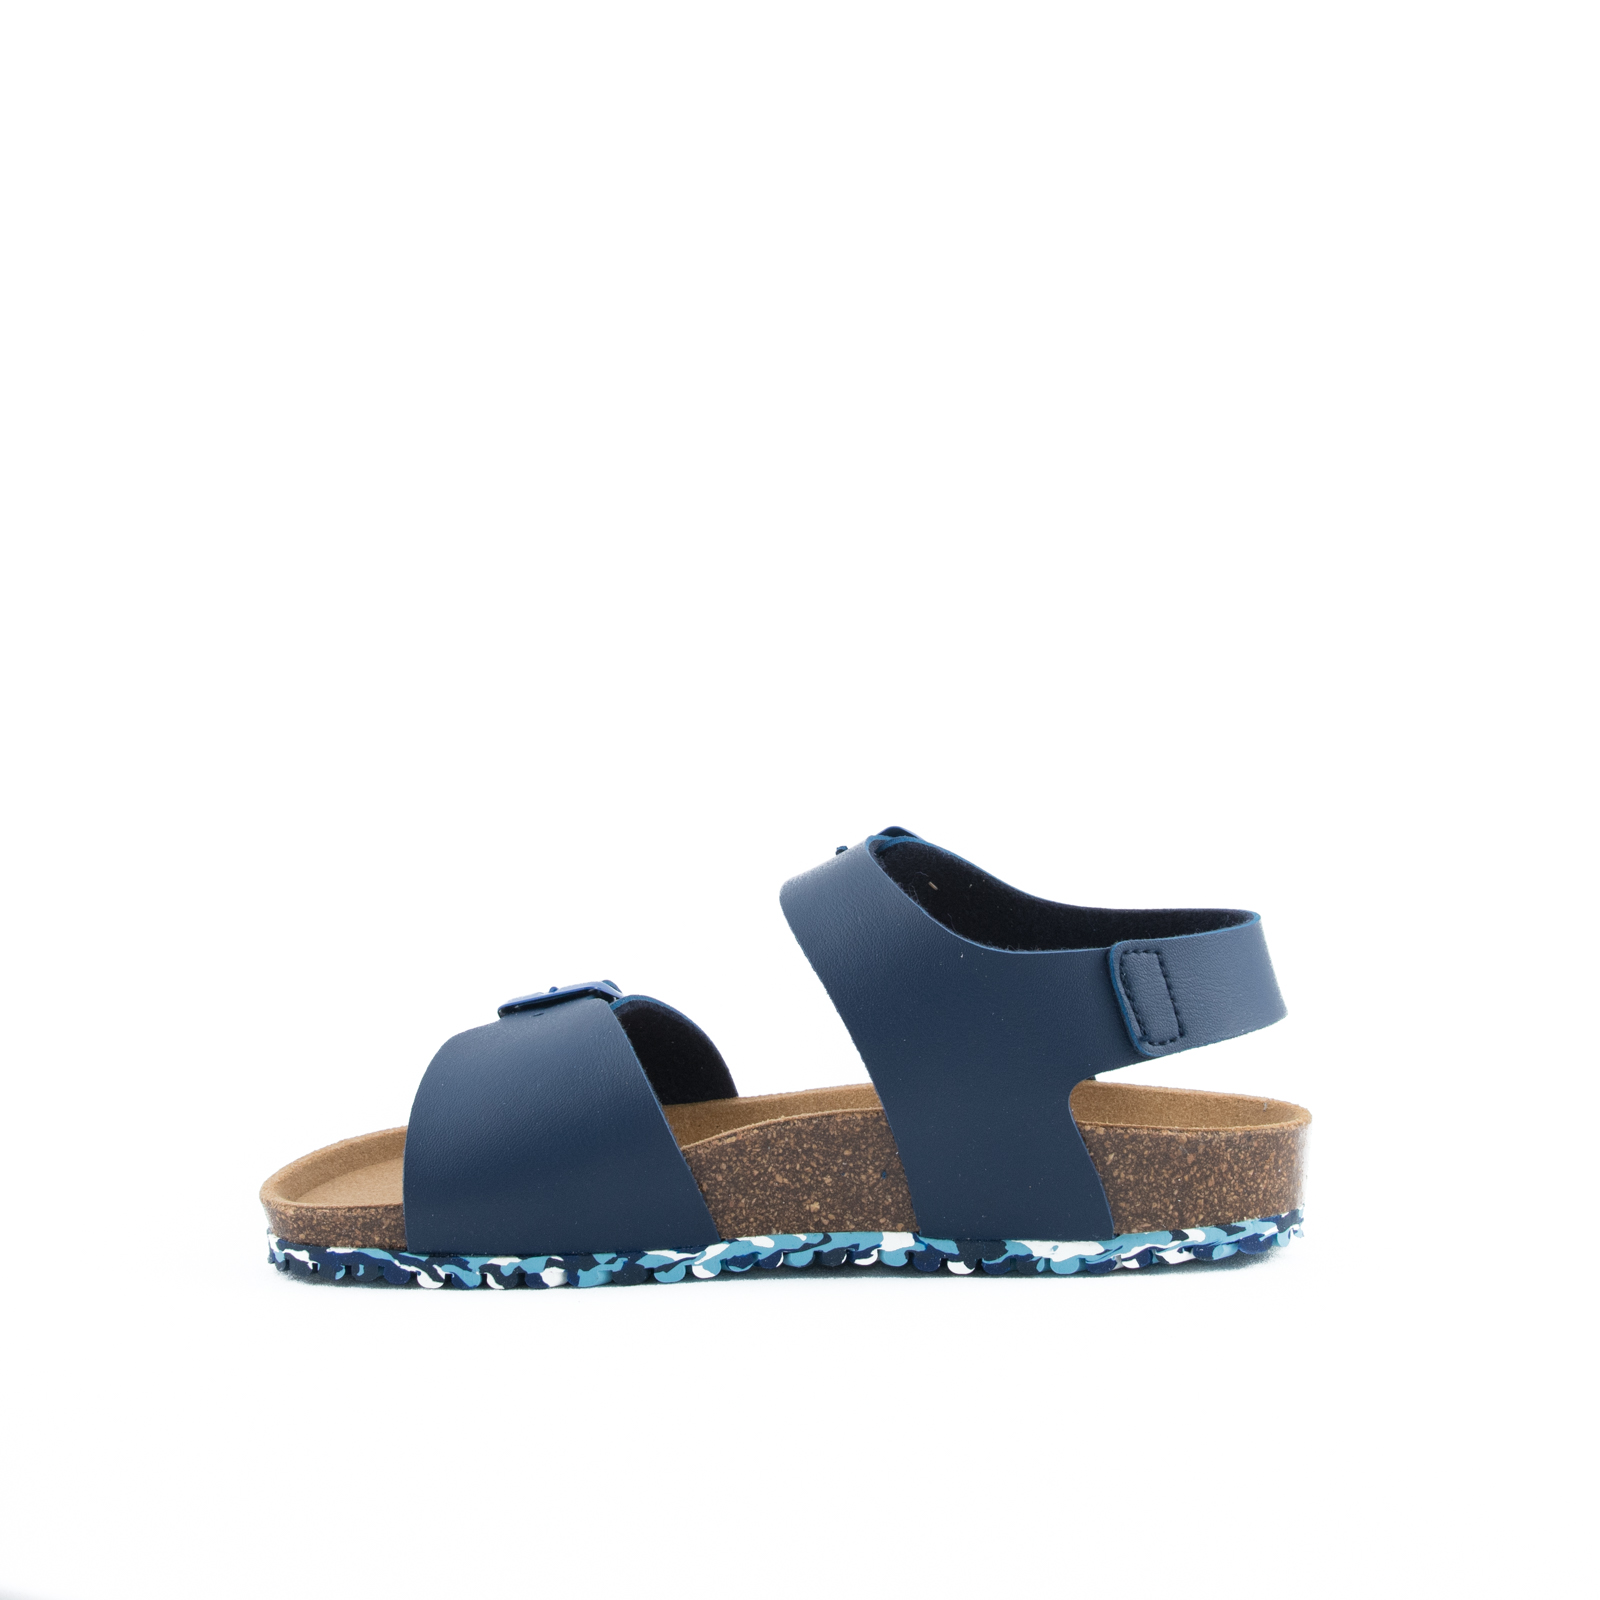 GARVALIN Sandals Blue 192481